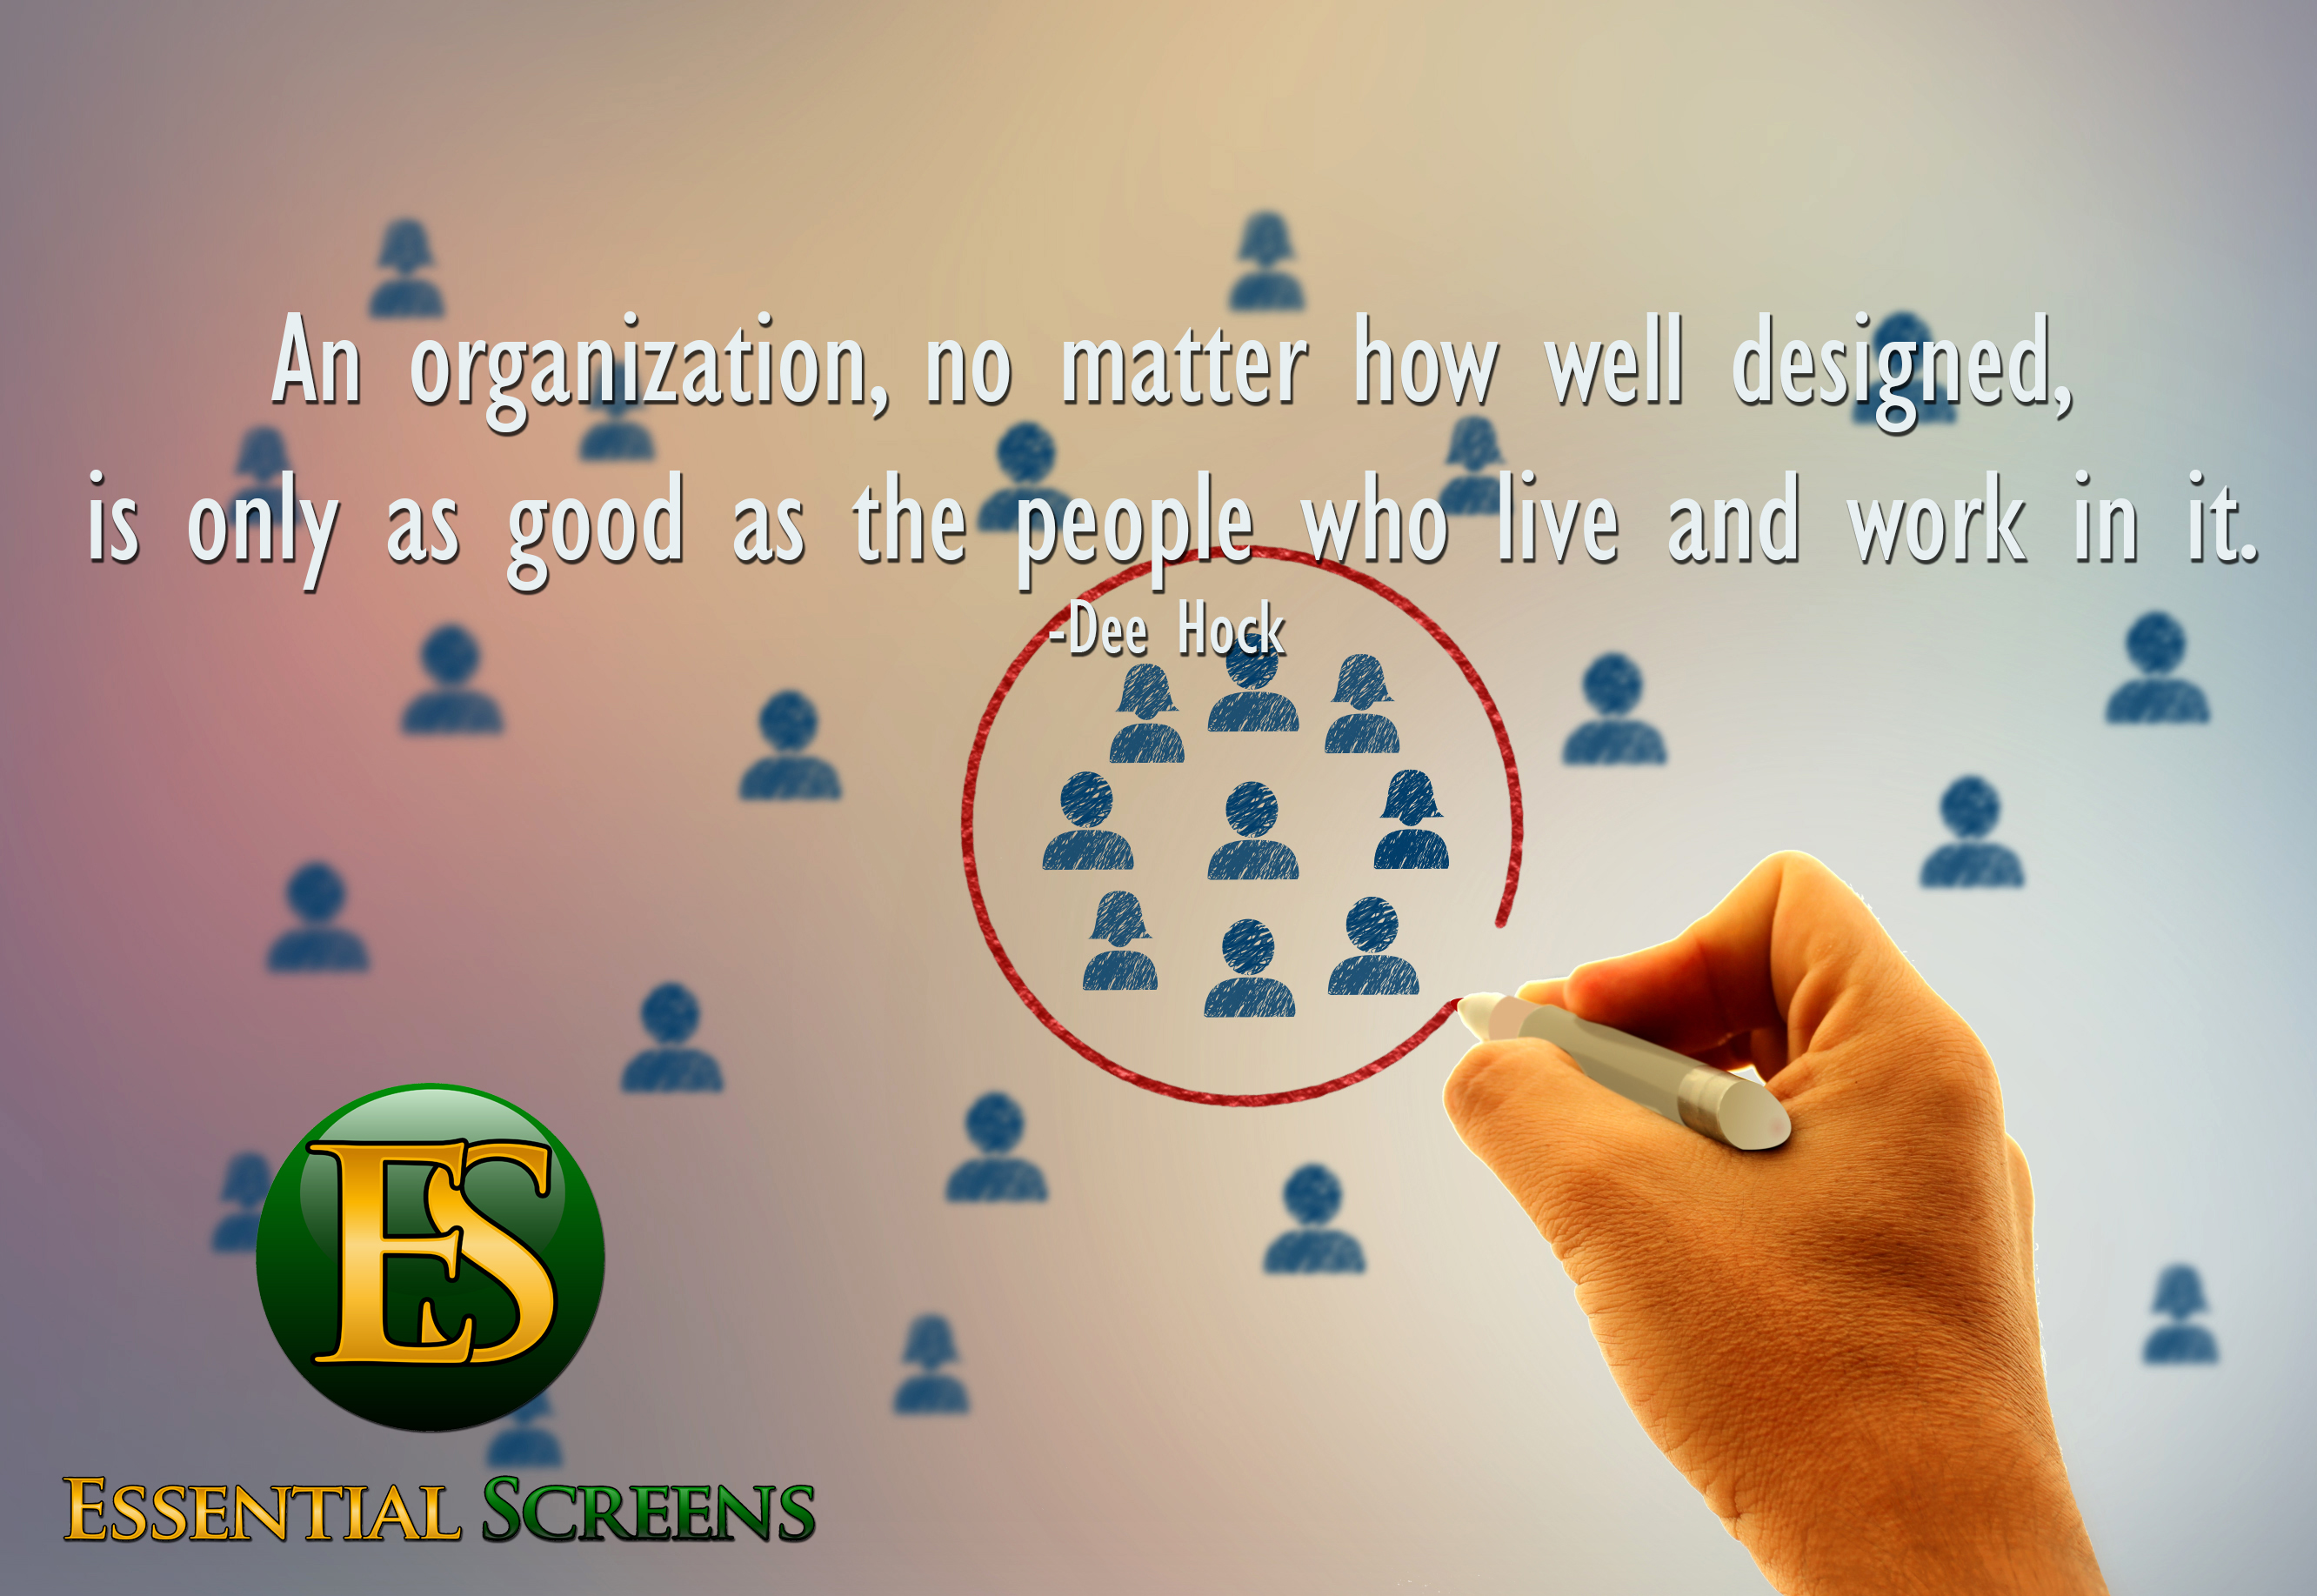 An organization, no matter how well designed, is only as good as the people who live and work in it.